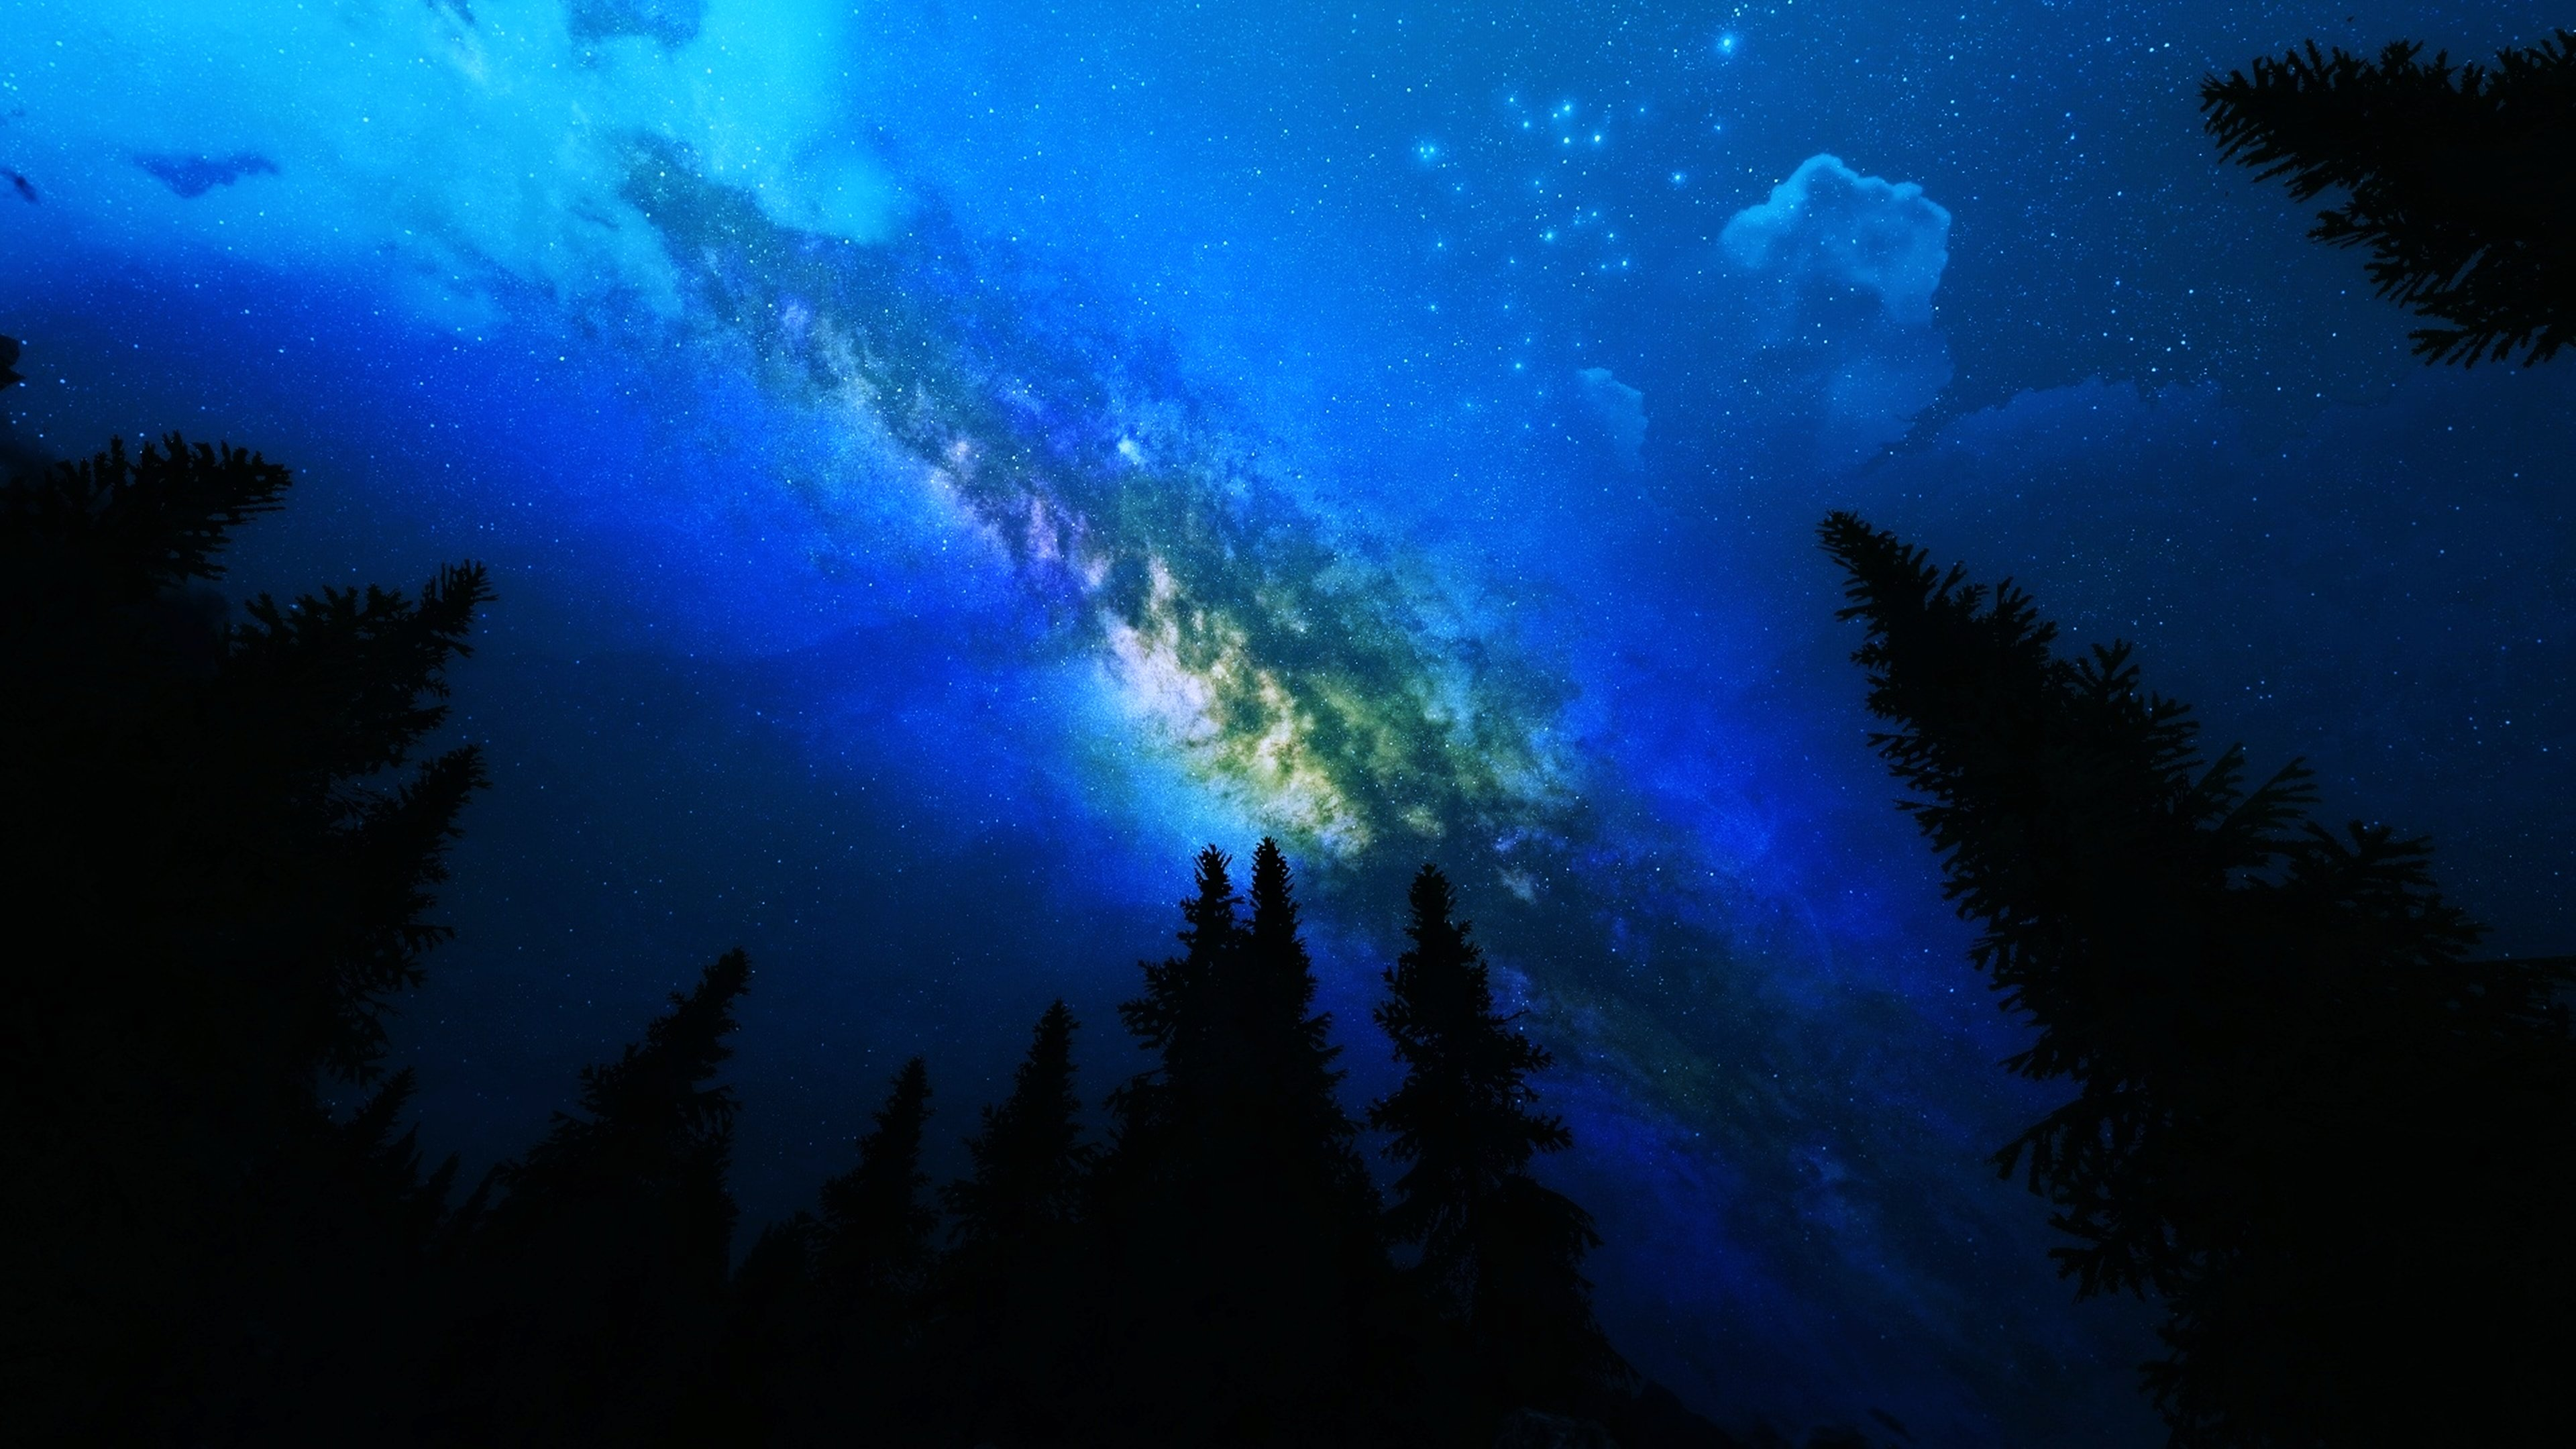 Galaxy Stars Nature Trees Background (page 3) - Pics about ...